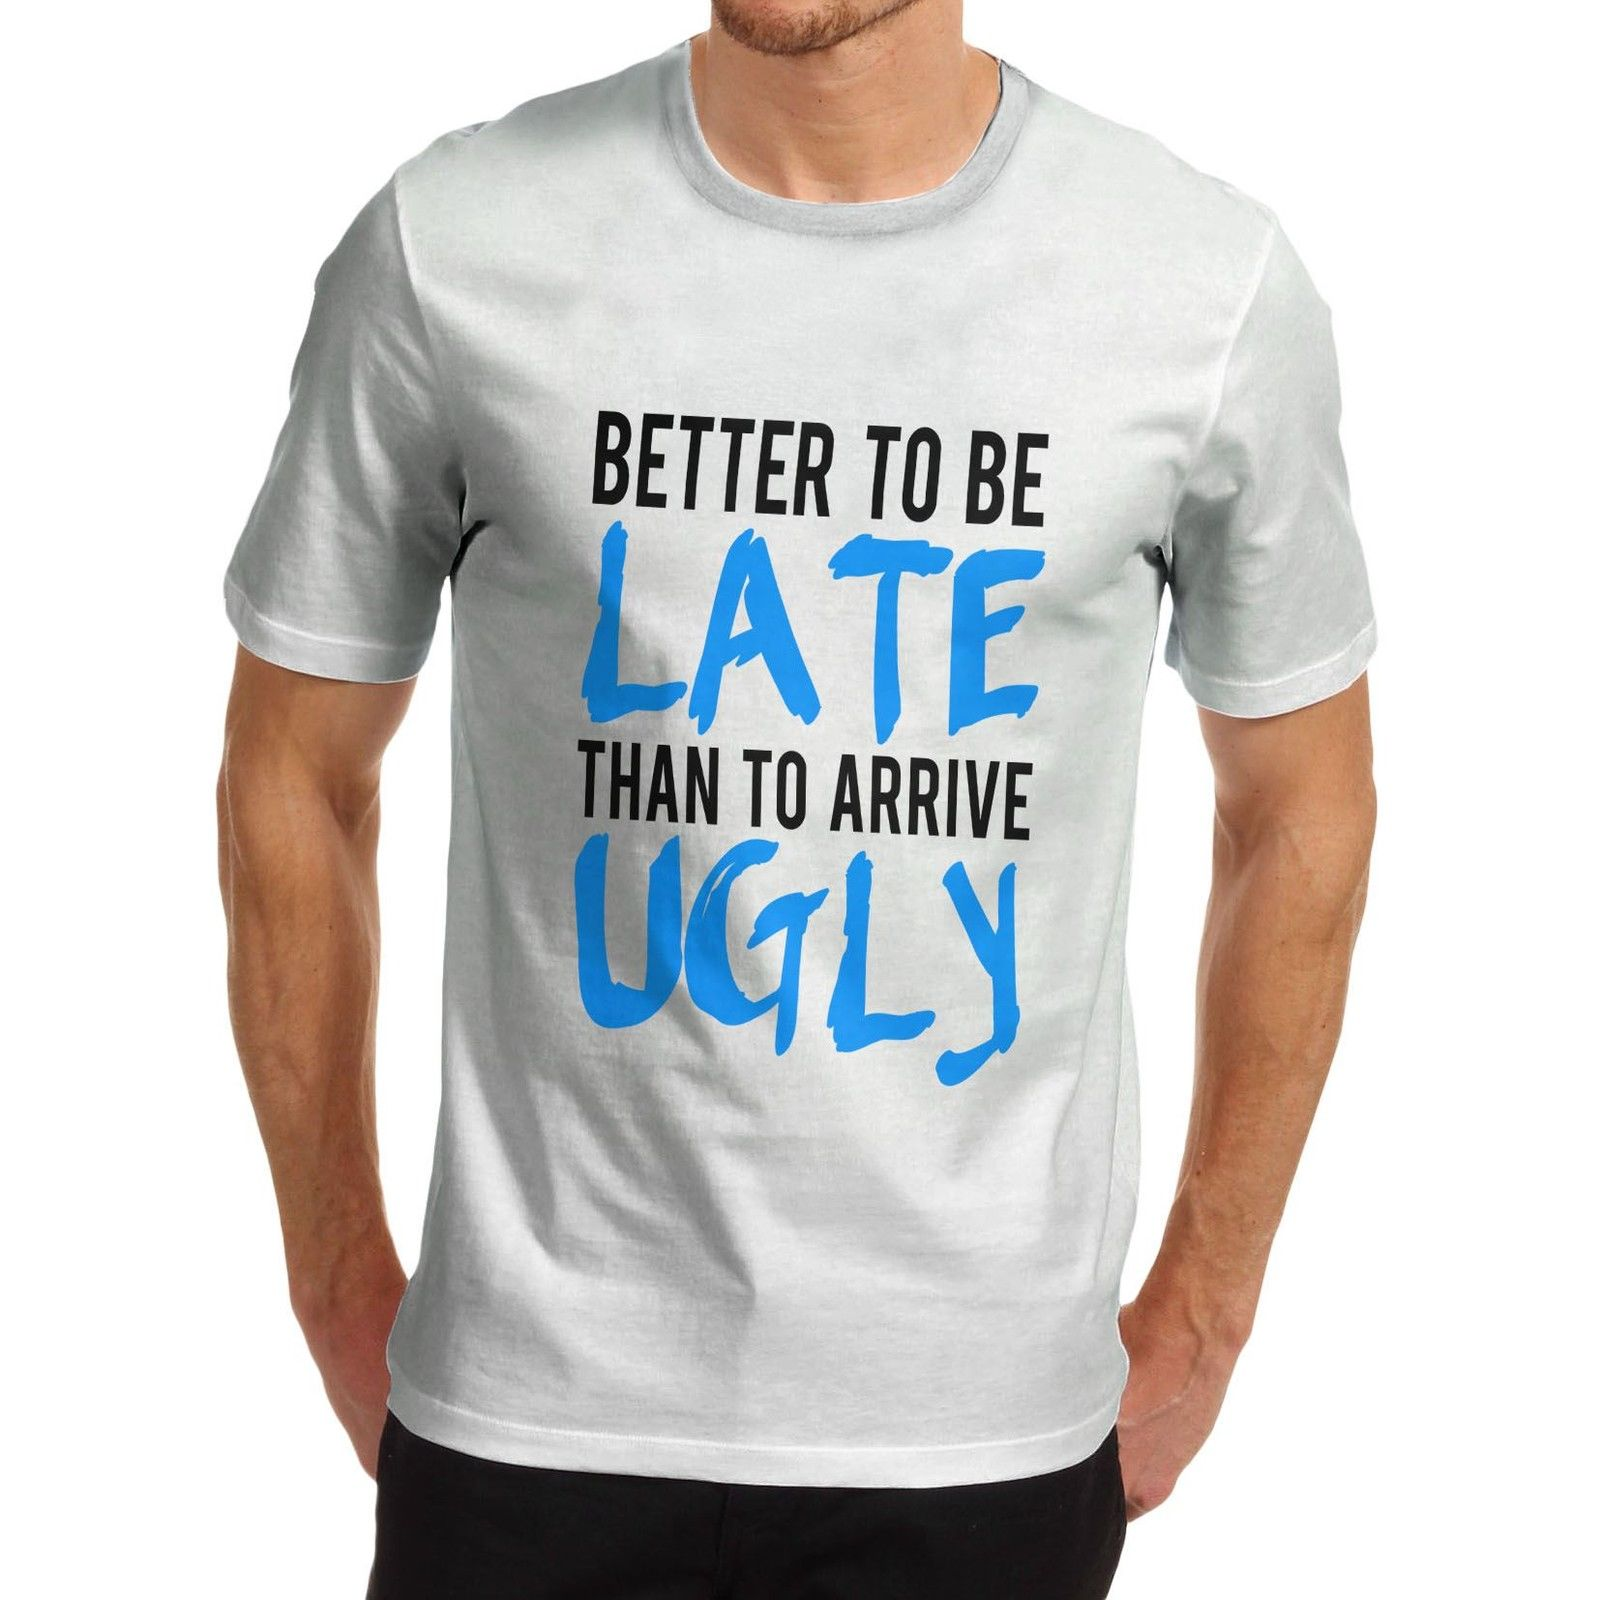 7e6c275fb New Brand Clothing T Shirts Men Cotton Novelty Funny Message Better Late  Than Ugly T Shirt Sale 100 % Cotton T Shirt-in T-Shirts from Men's Clothing  on ...